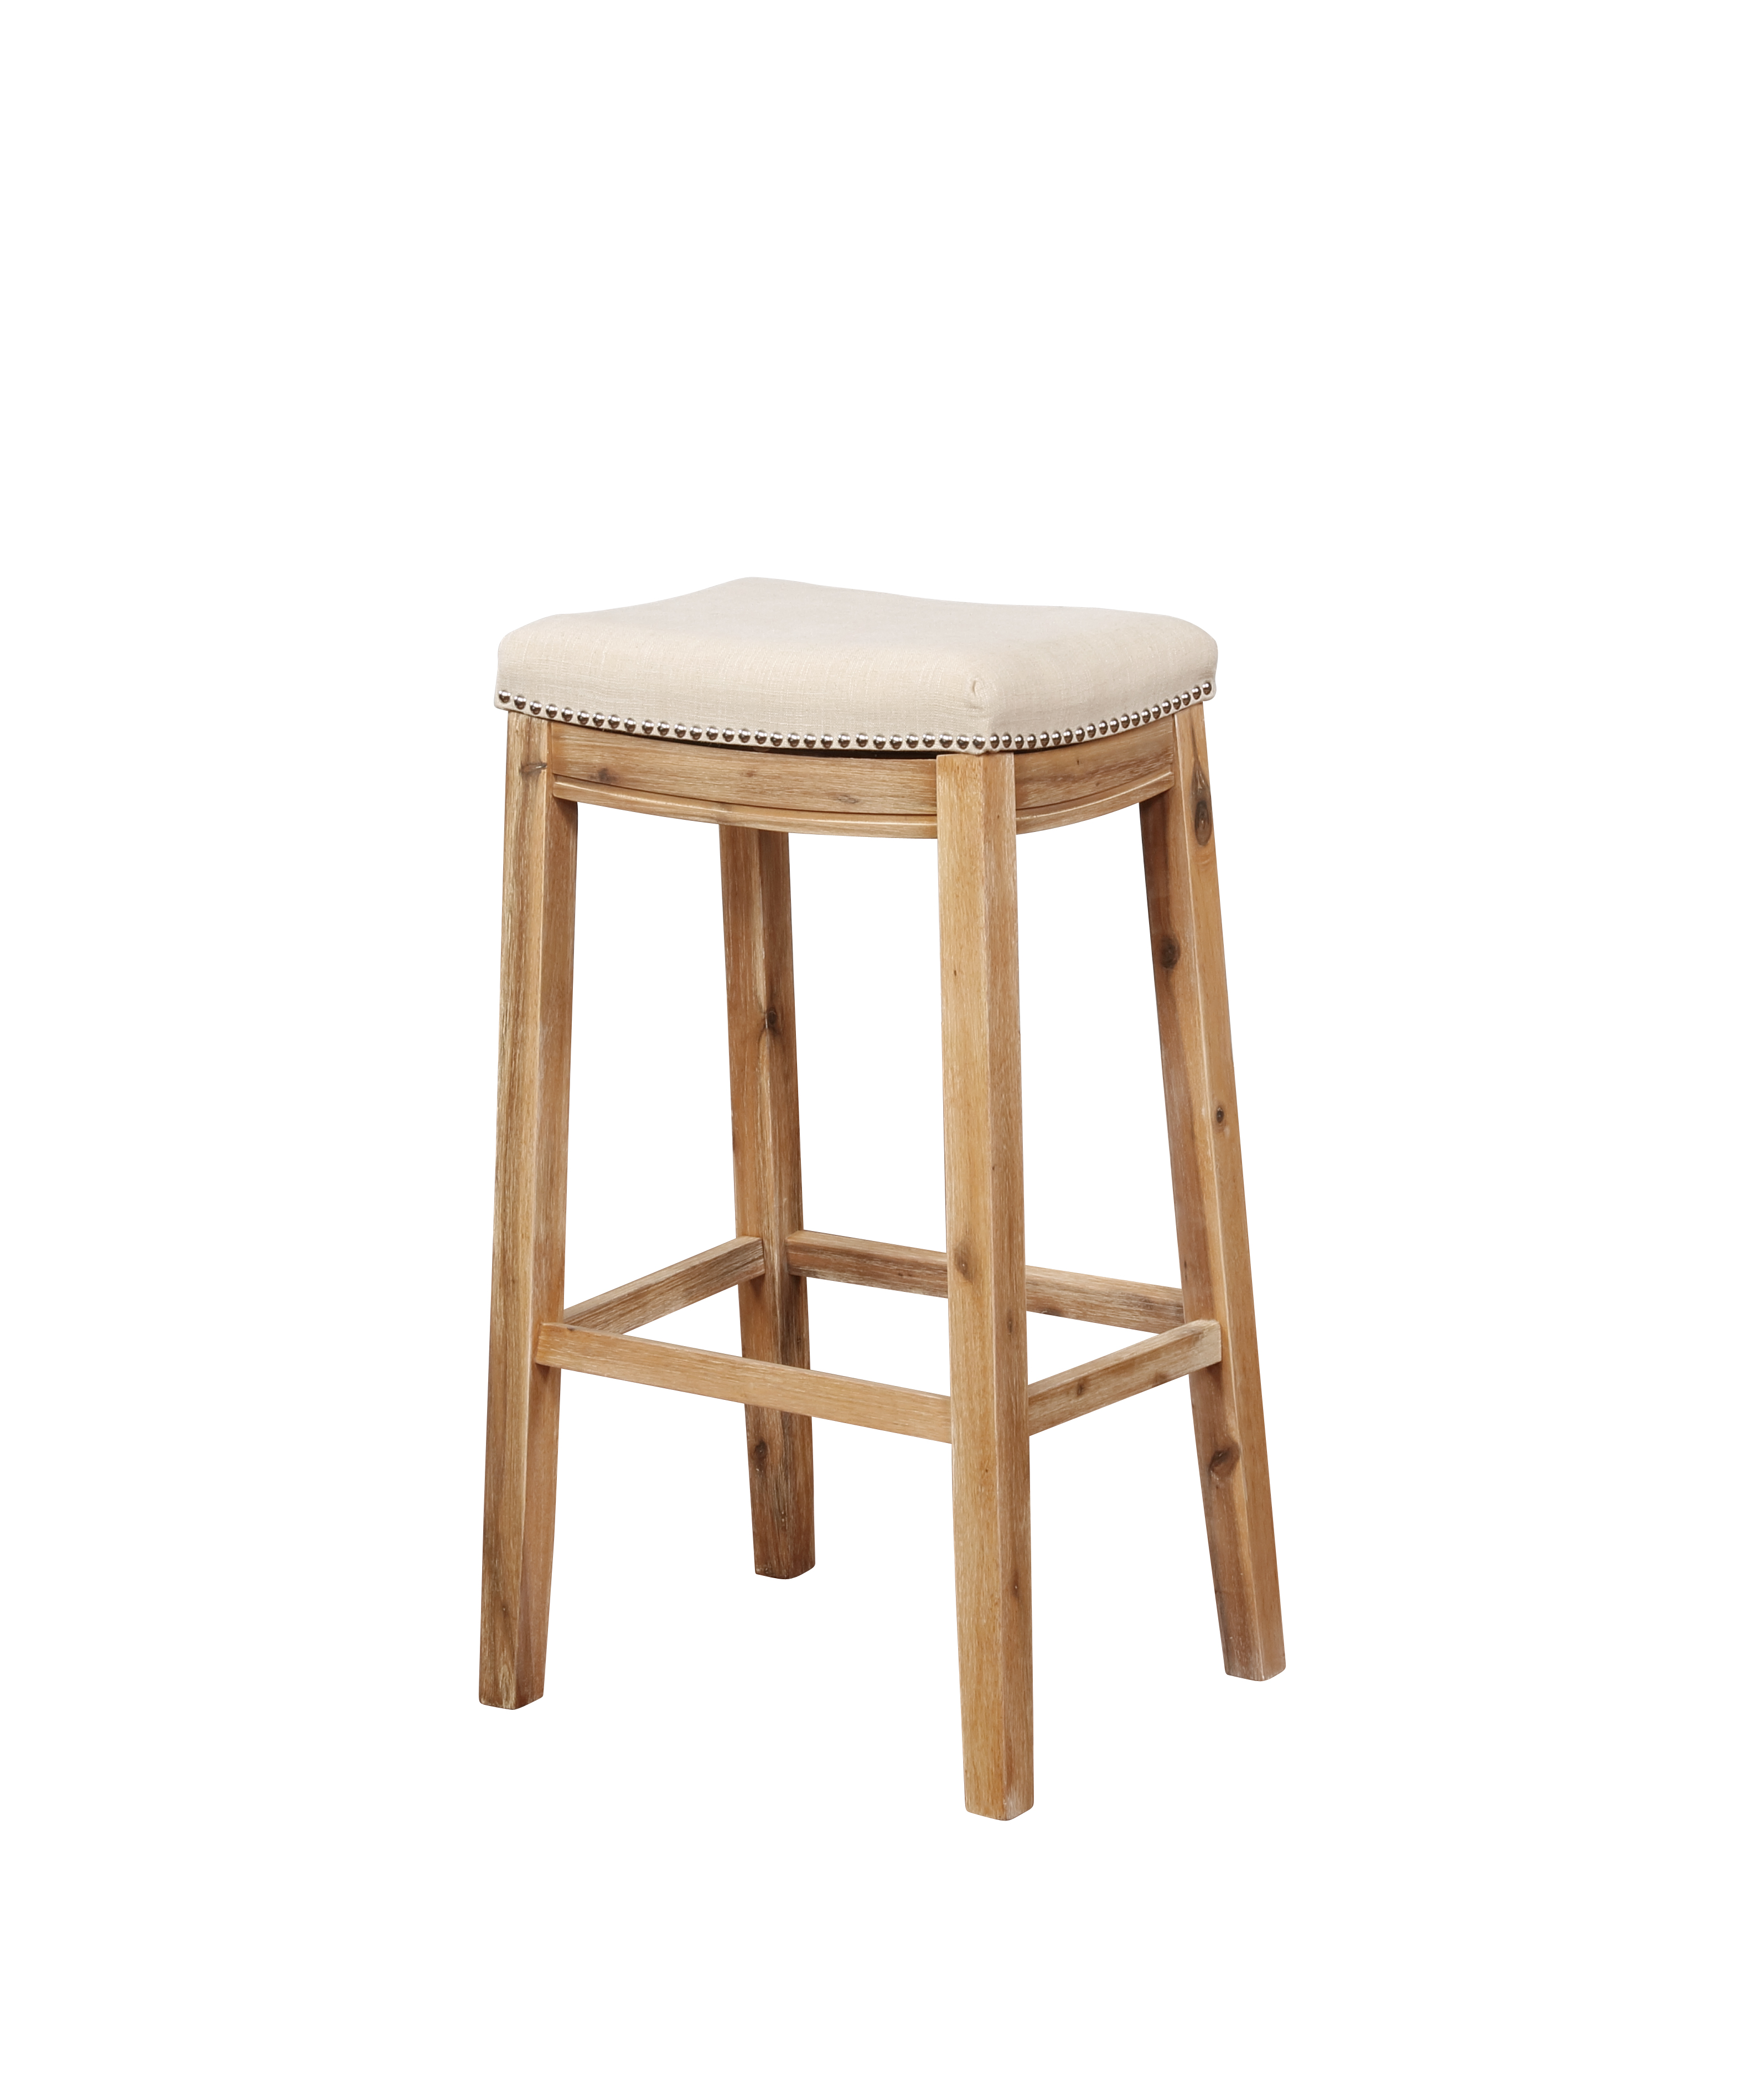 Linon Claridge Bar Stool 32 Inch Seat Height Multiple Colors